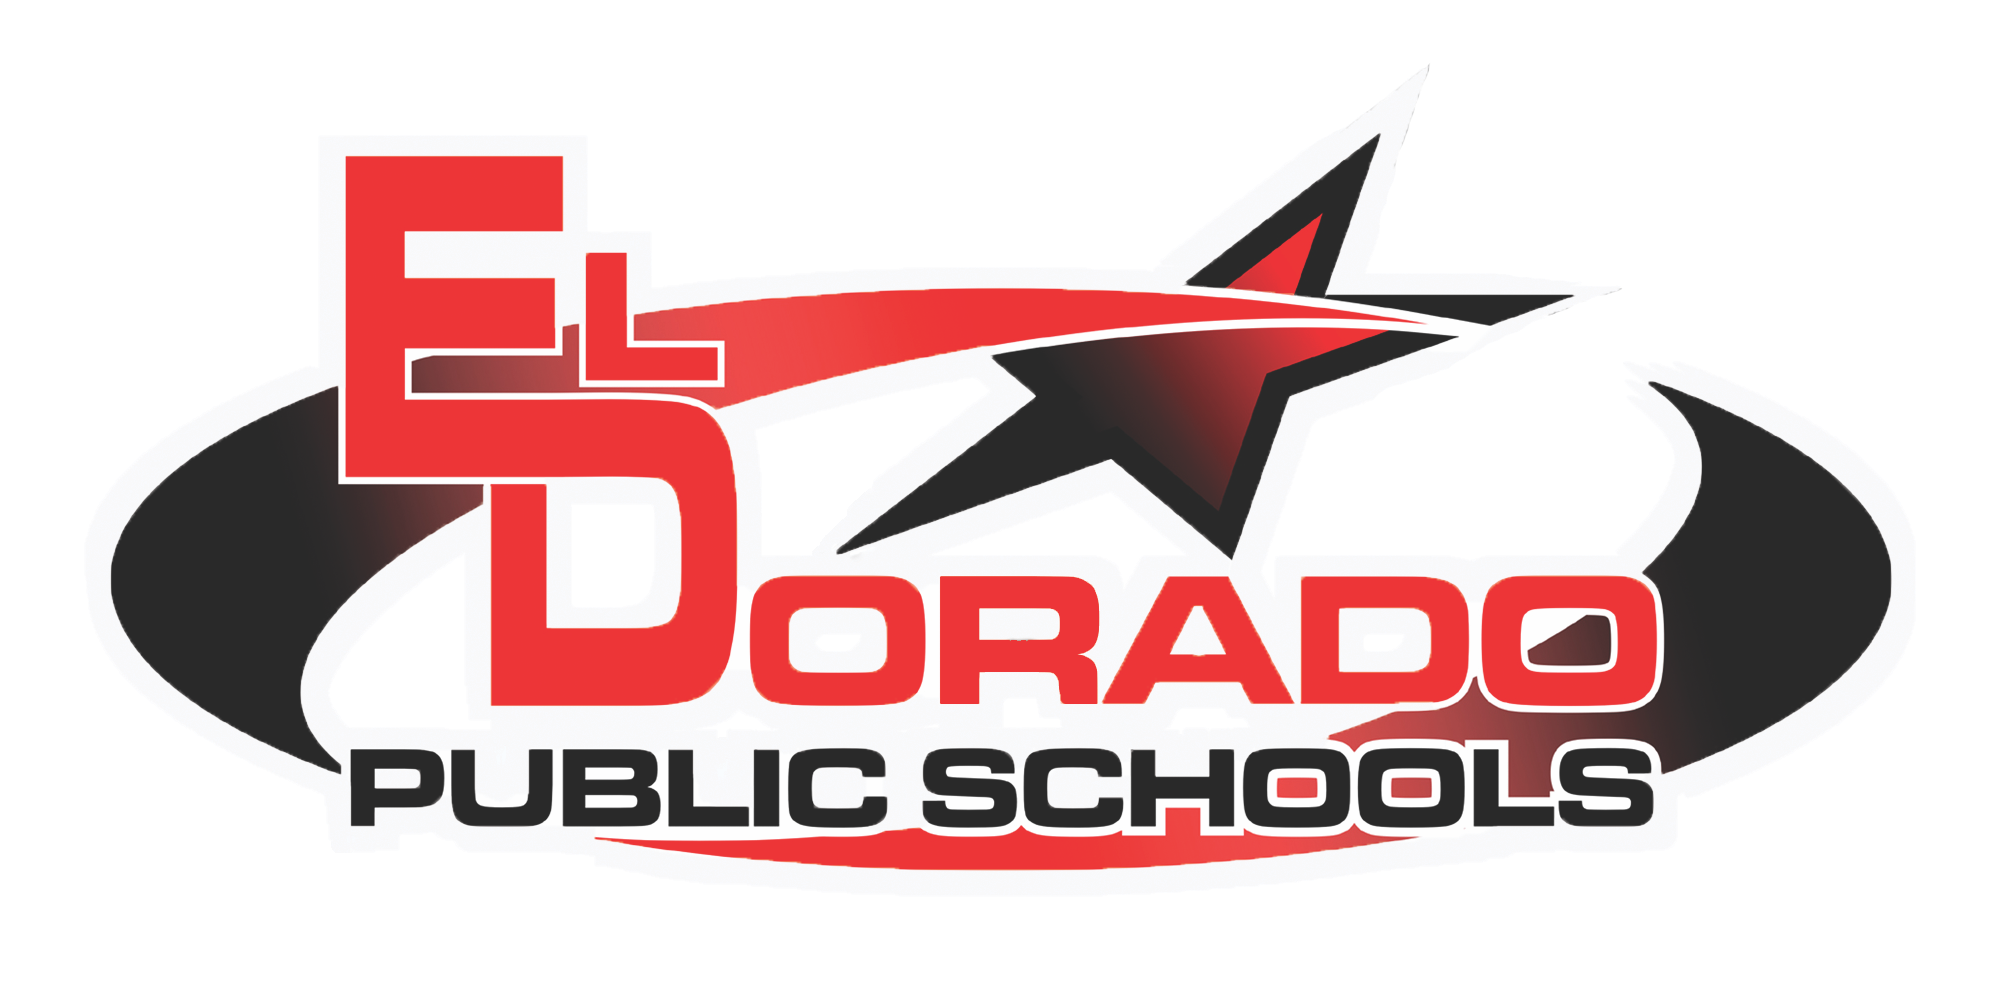 El Dorado Public Schools with black and red oval and a star above